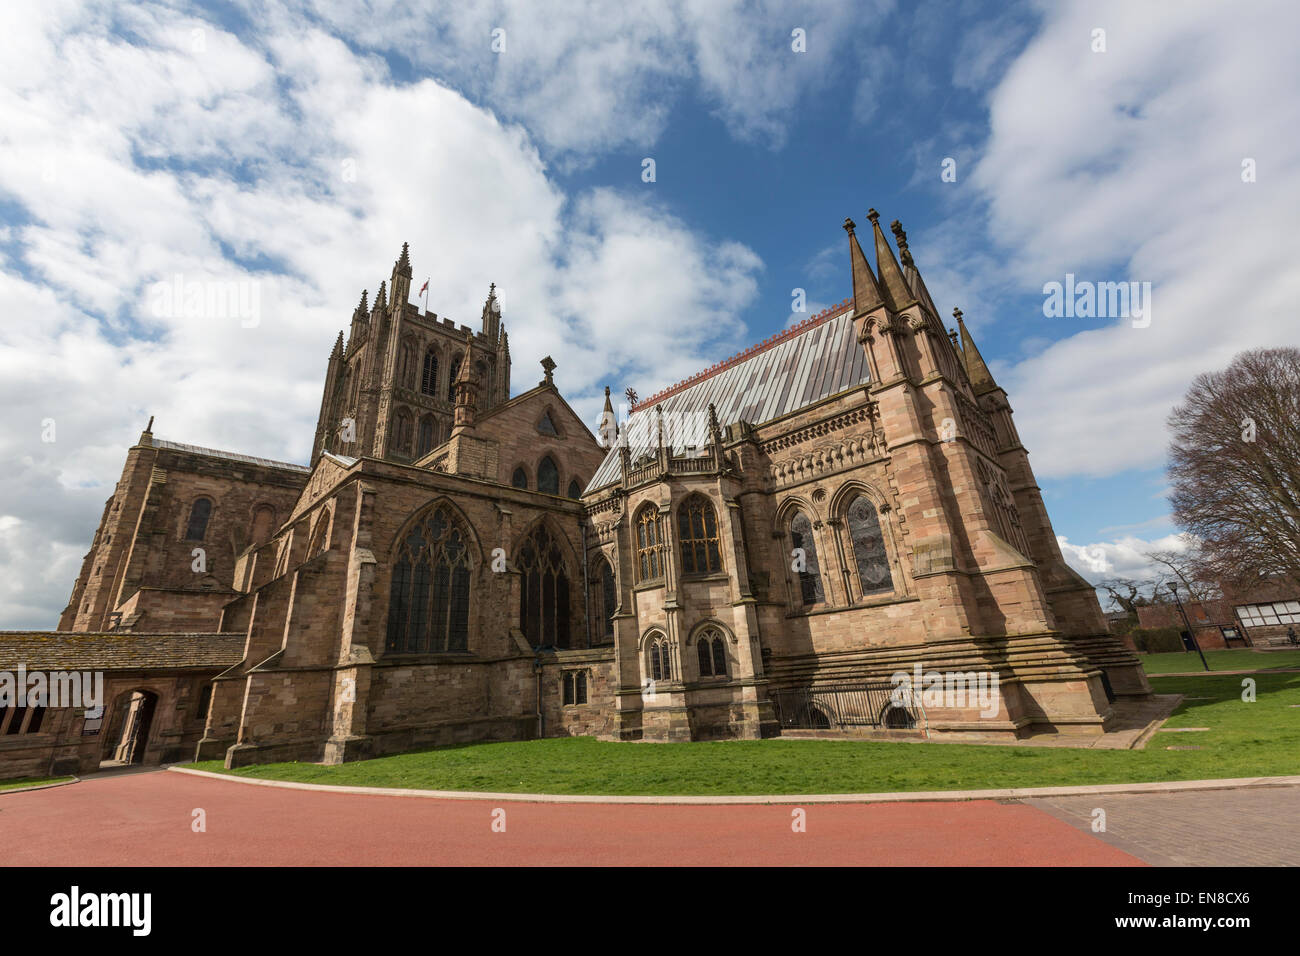 Hereford Cathedral, Herefordshire, United KingdomStock Photo